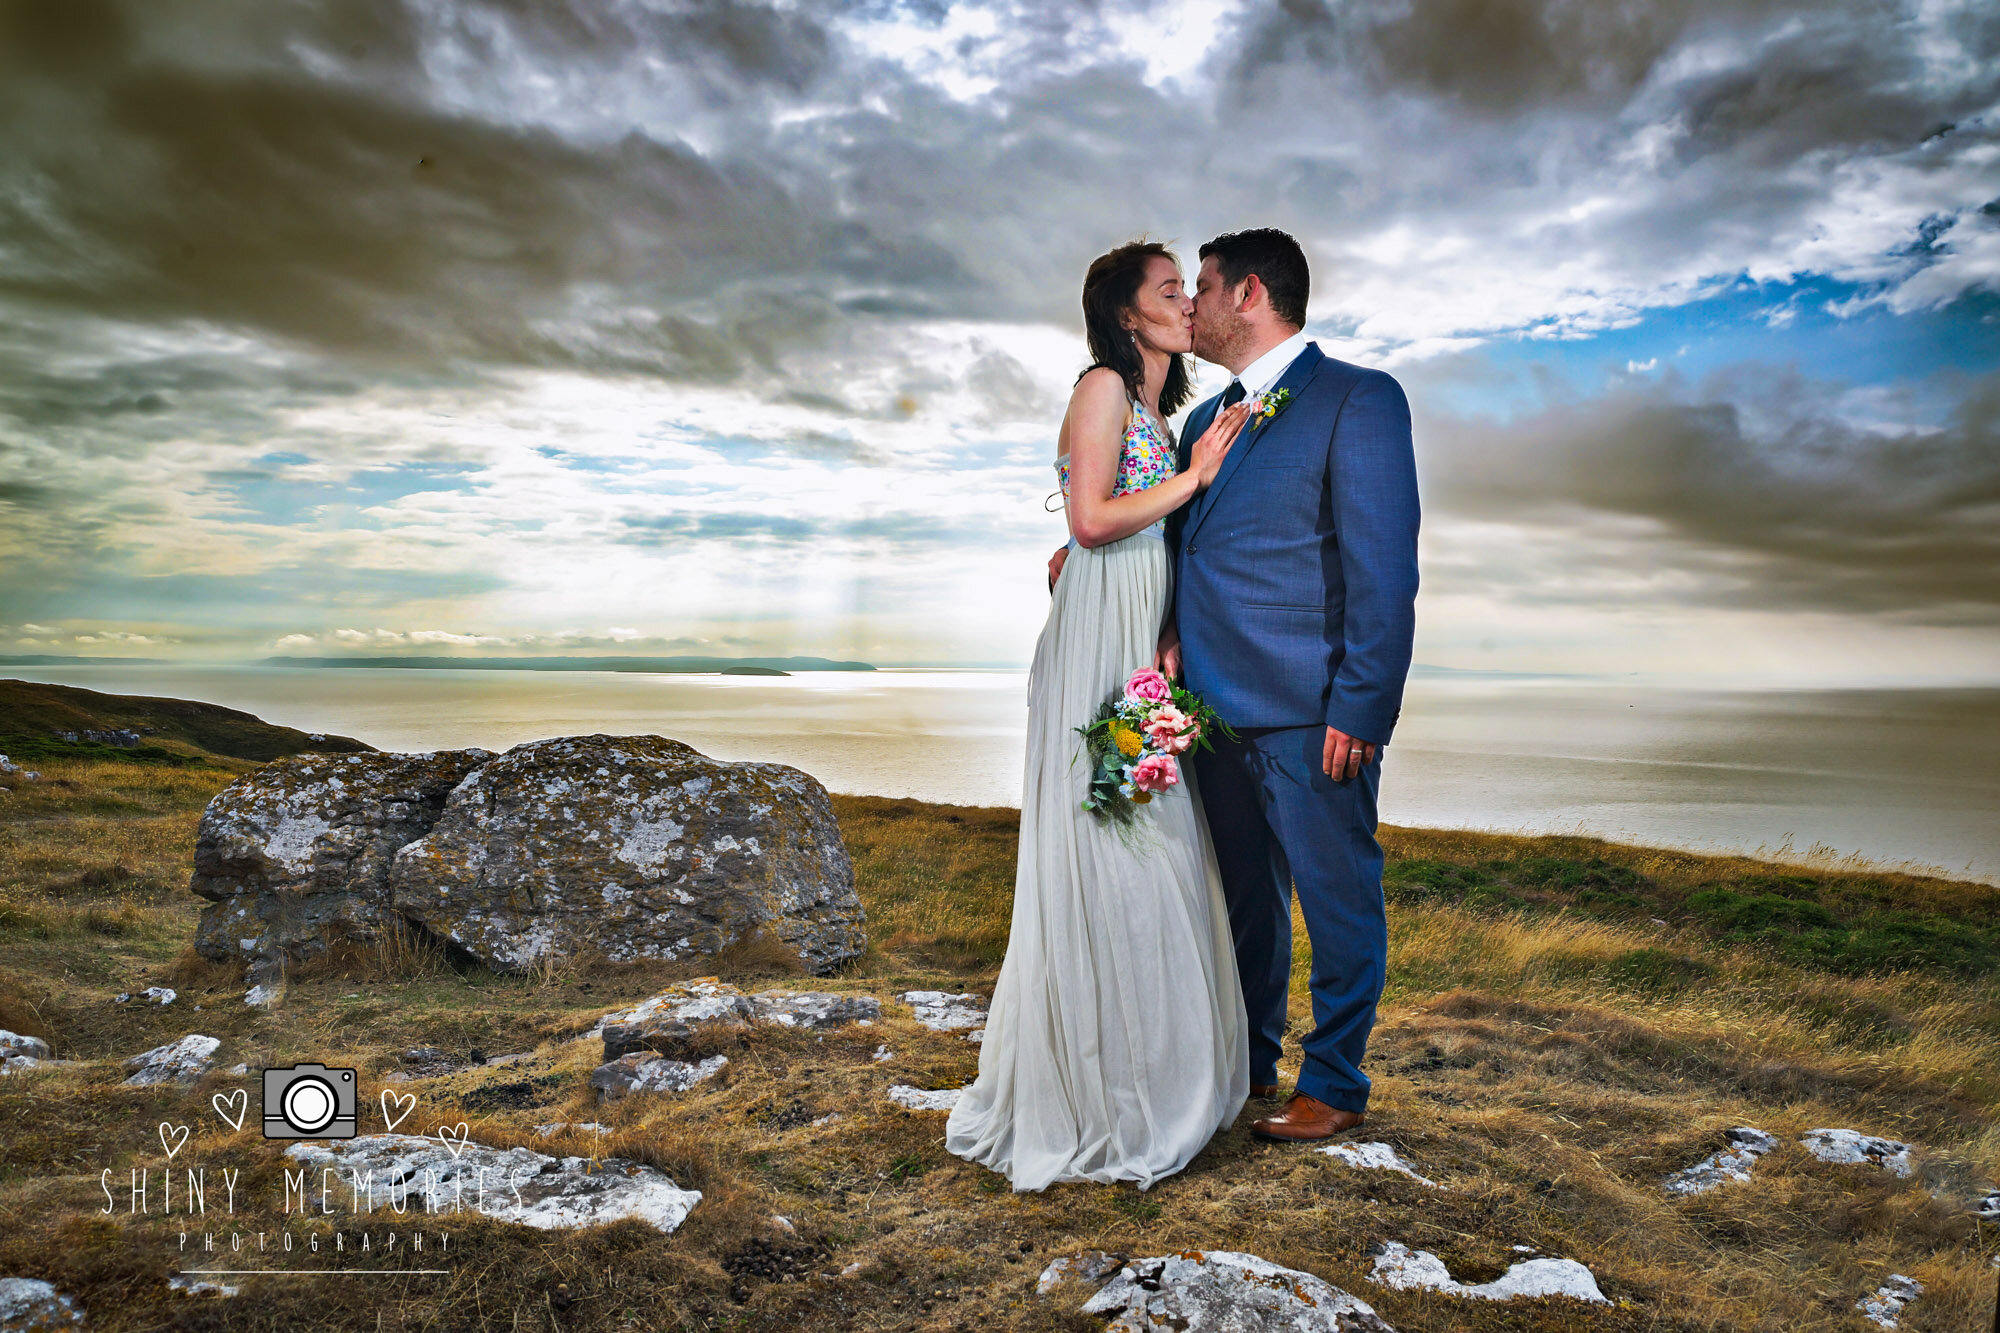 Shiny Memories North Wales Wedding Photographers - The Beaches - Pentre Mawr Country House-8.jpg